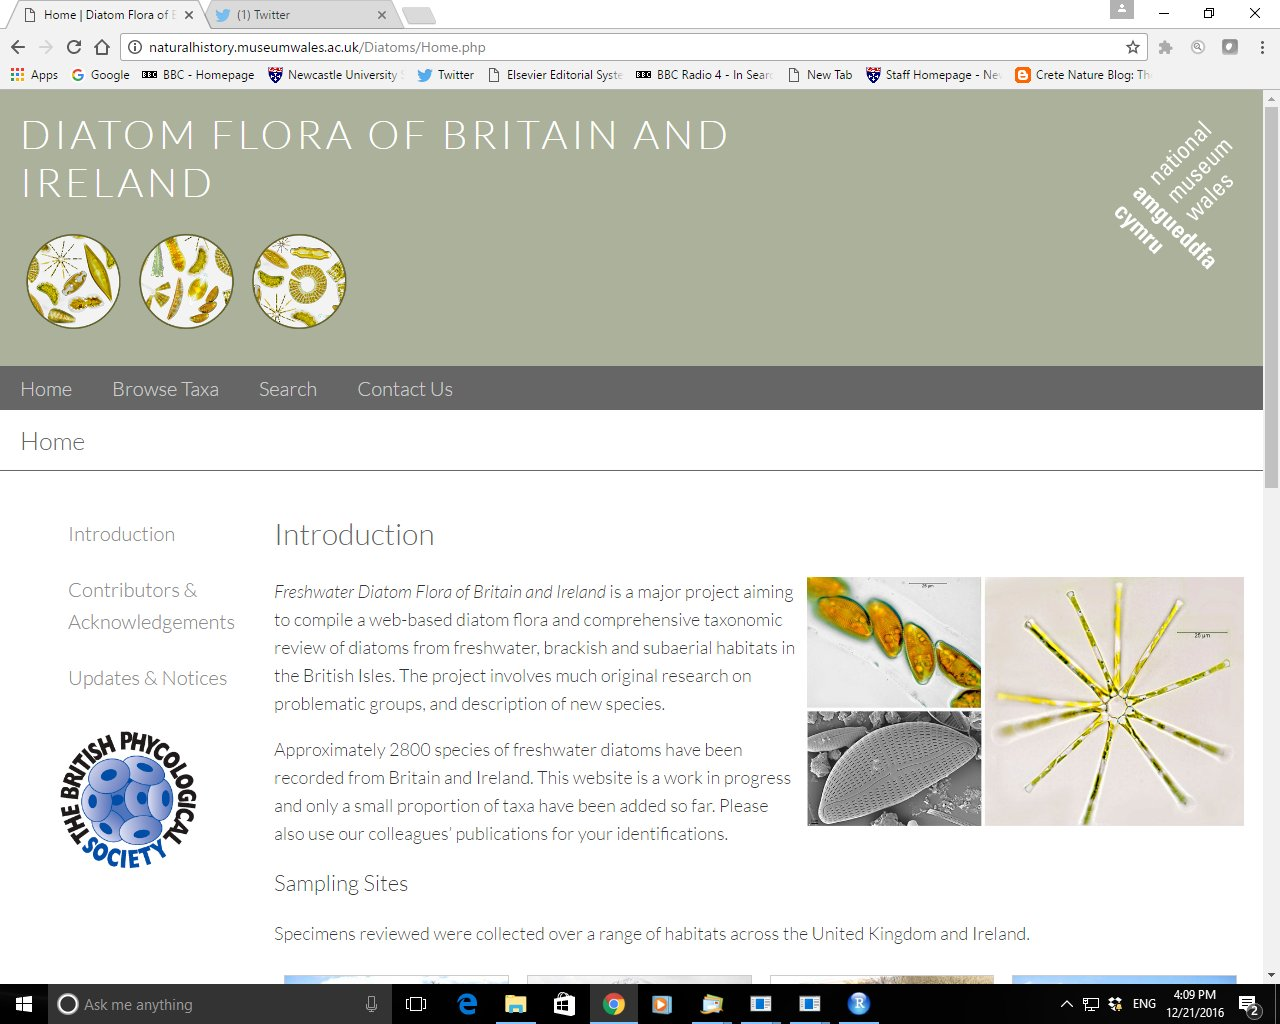 Thumbnail for Freshwater Diatom Flora of Britain and Ireland website launched